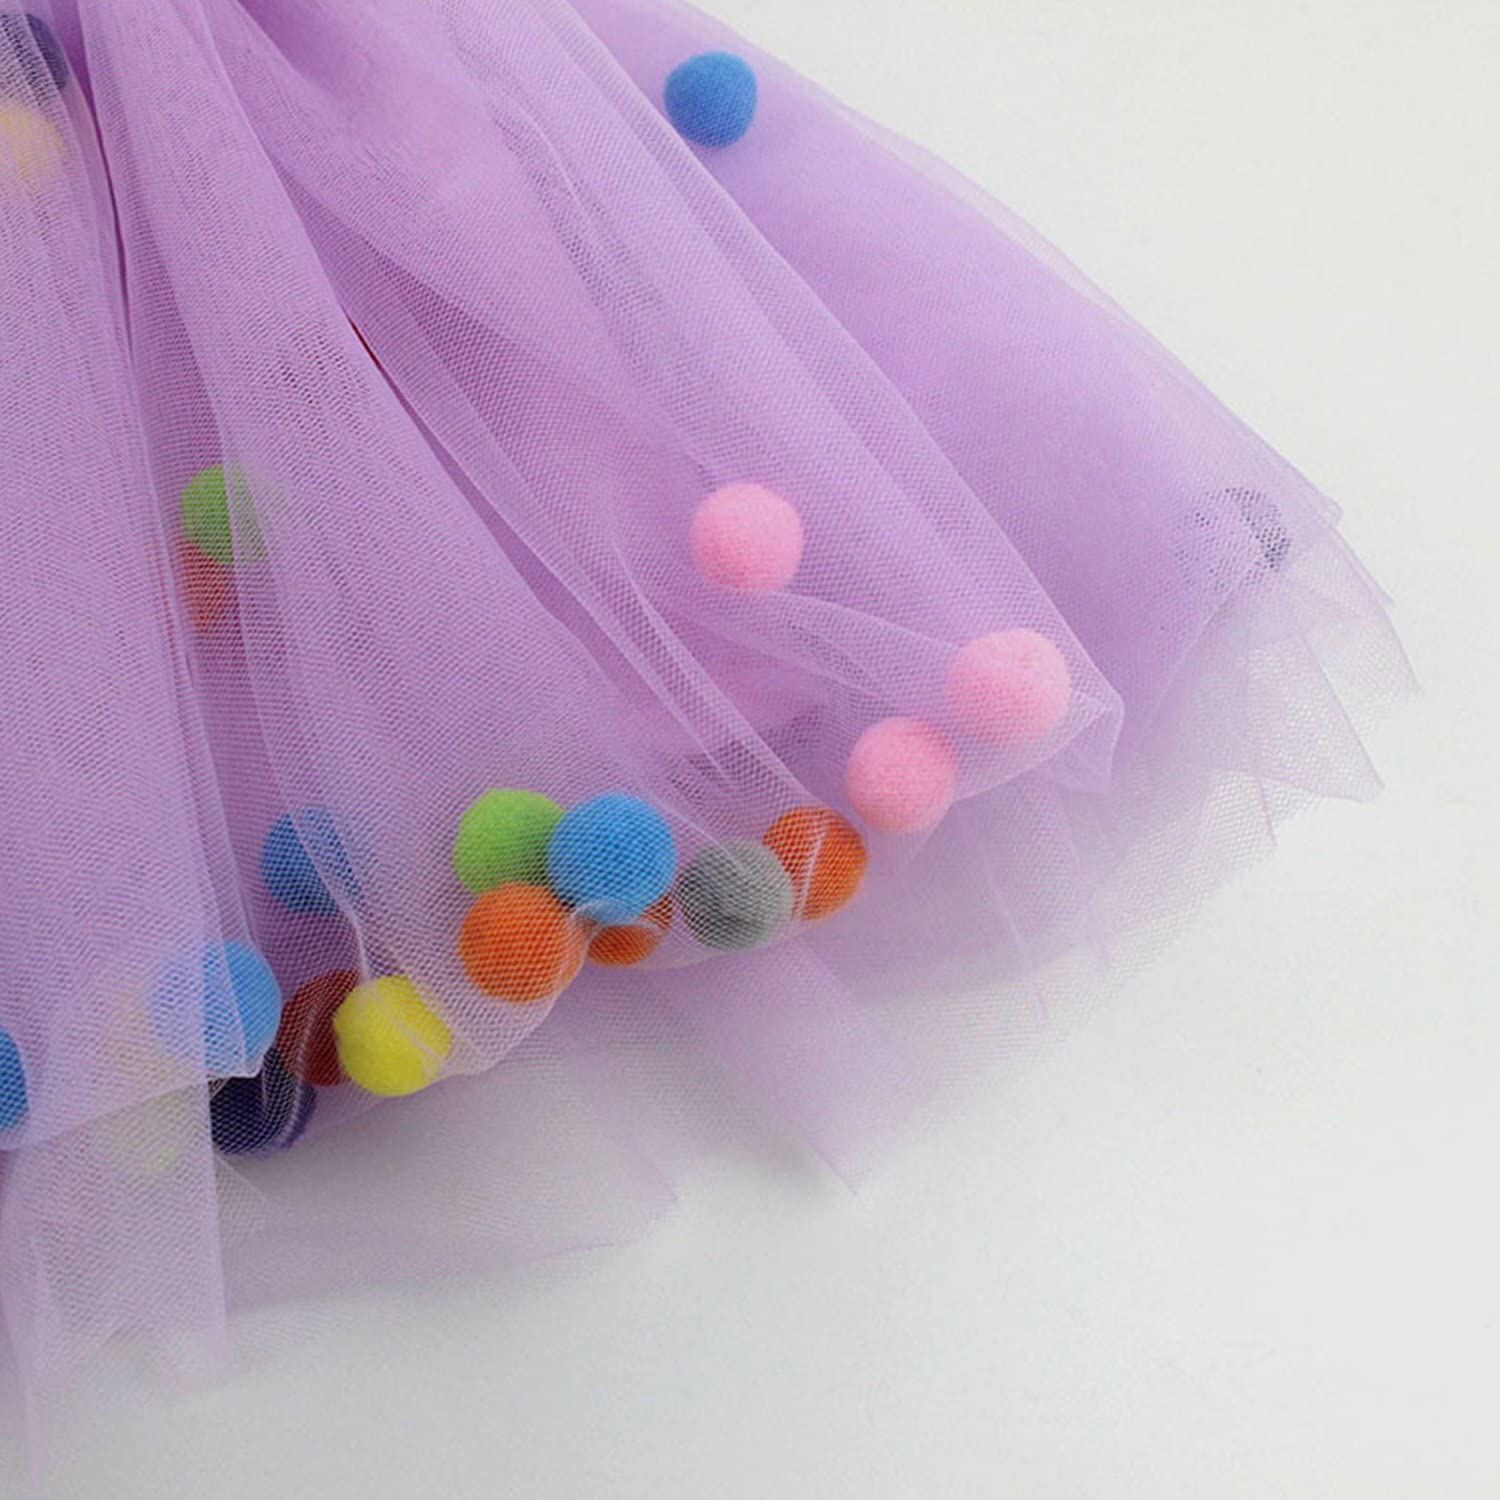 De feuilles Kids Little Girls Layered Tutu Skirt Ballet Dance Party Dress Ruffle Tiered Small Balls